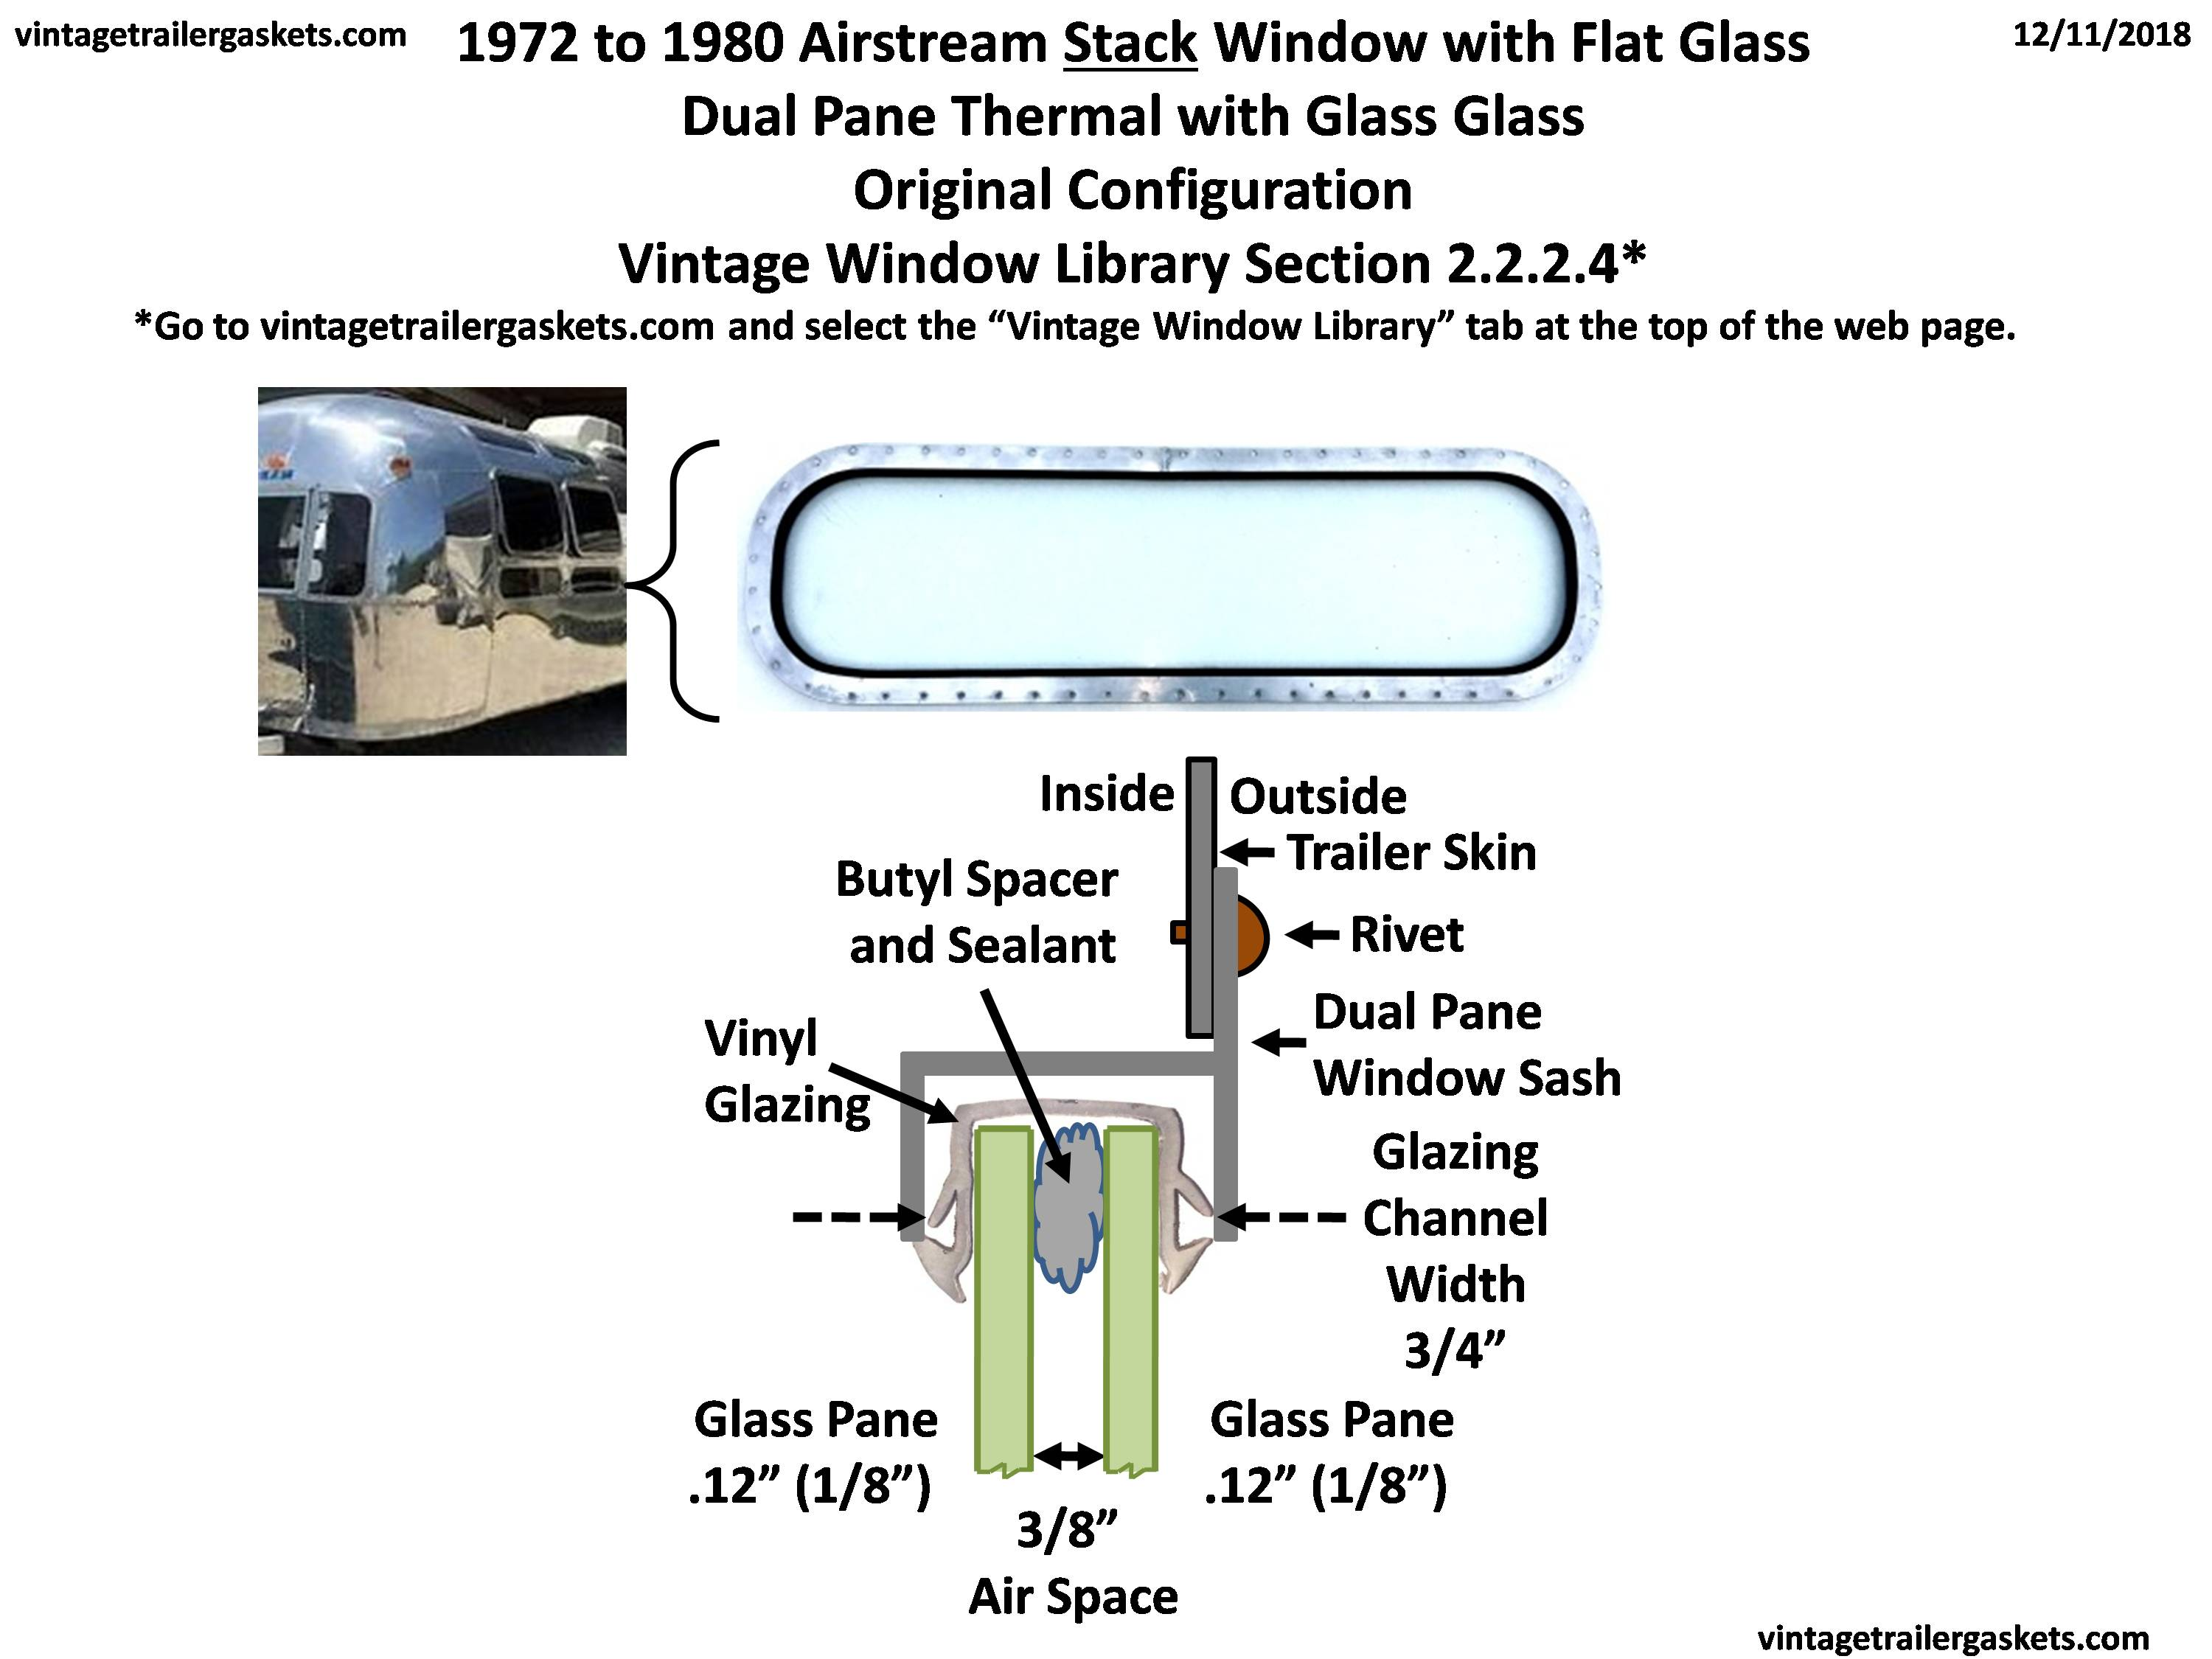 Vintage Window Library Trailer Gaskets Doubleglazingdiagram01jpg Original Configuration